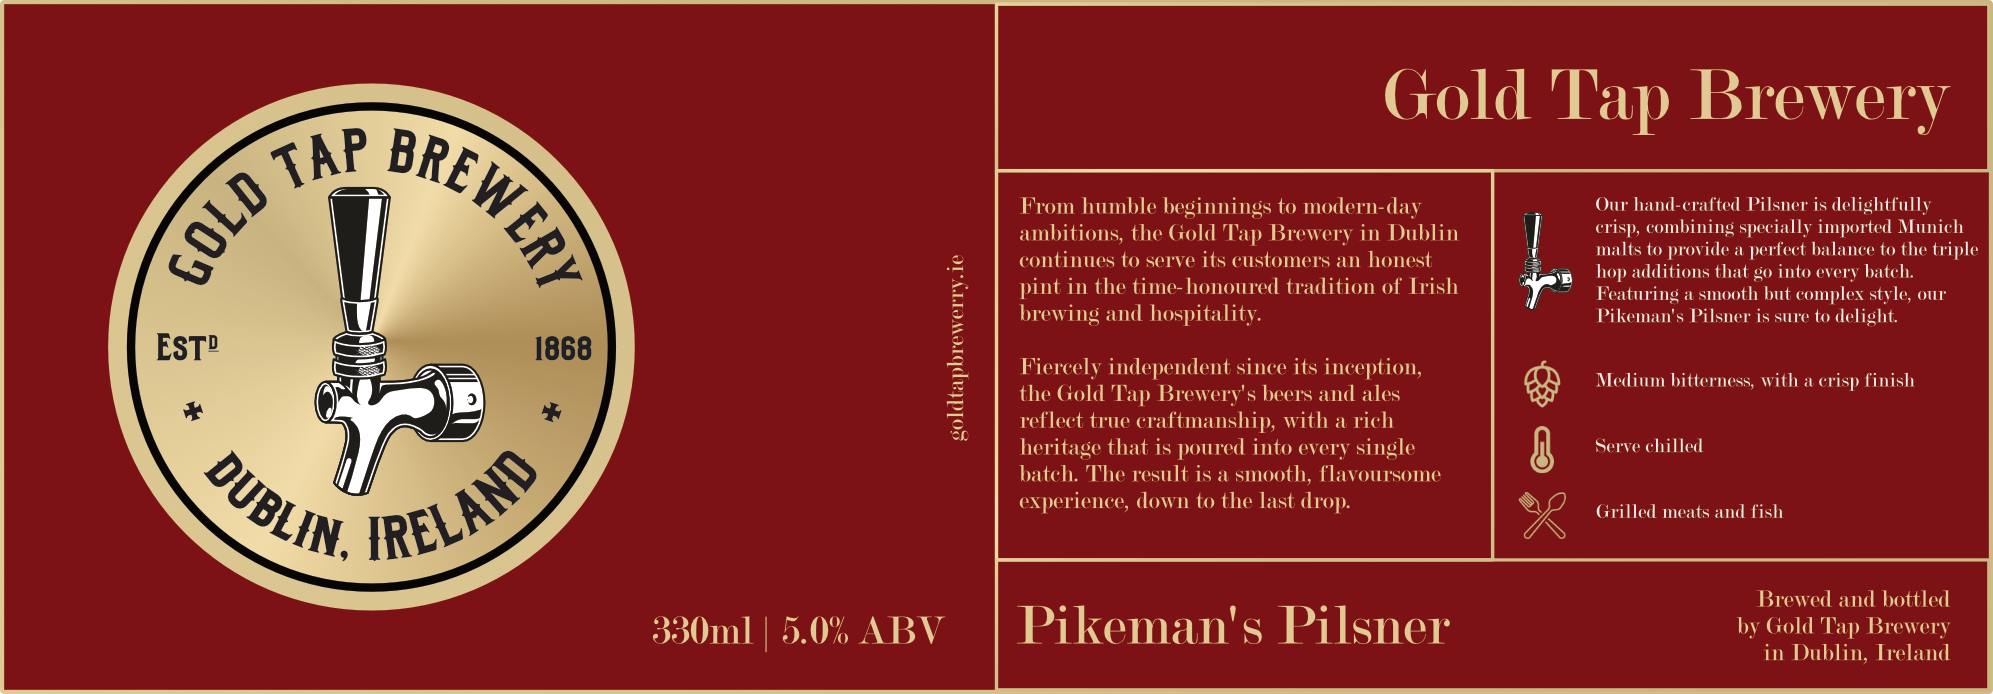 Gold-Tap-Brewery-Label-Red